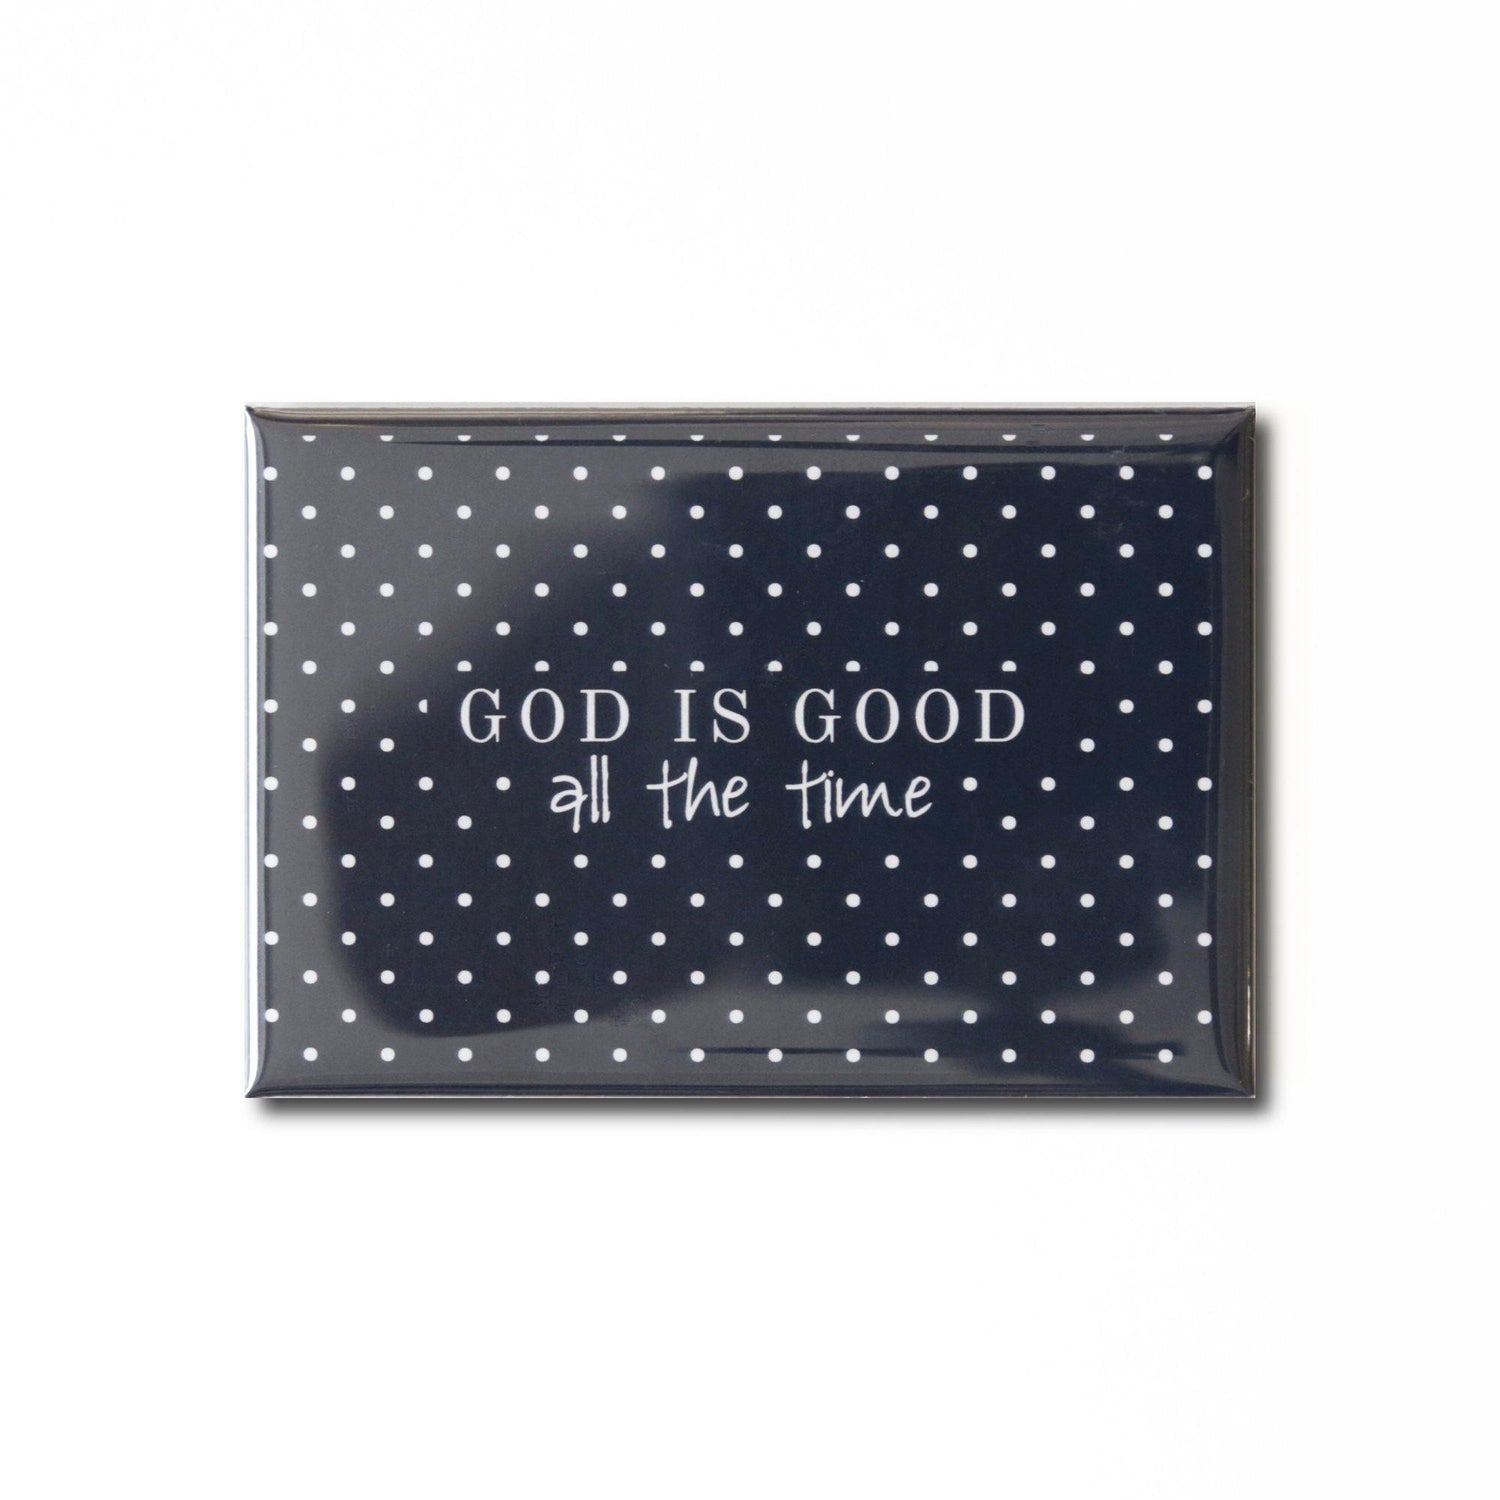 God is Good Magnet from Muscadine Press.